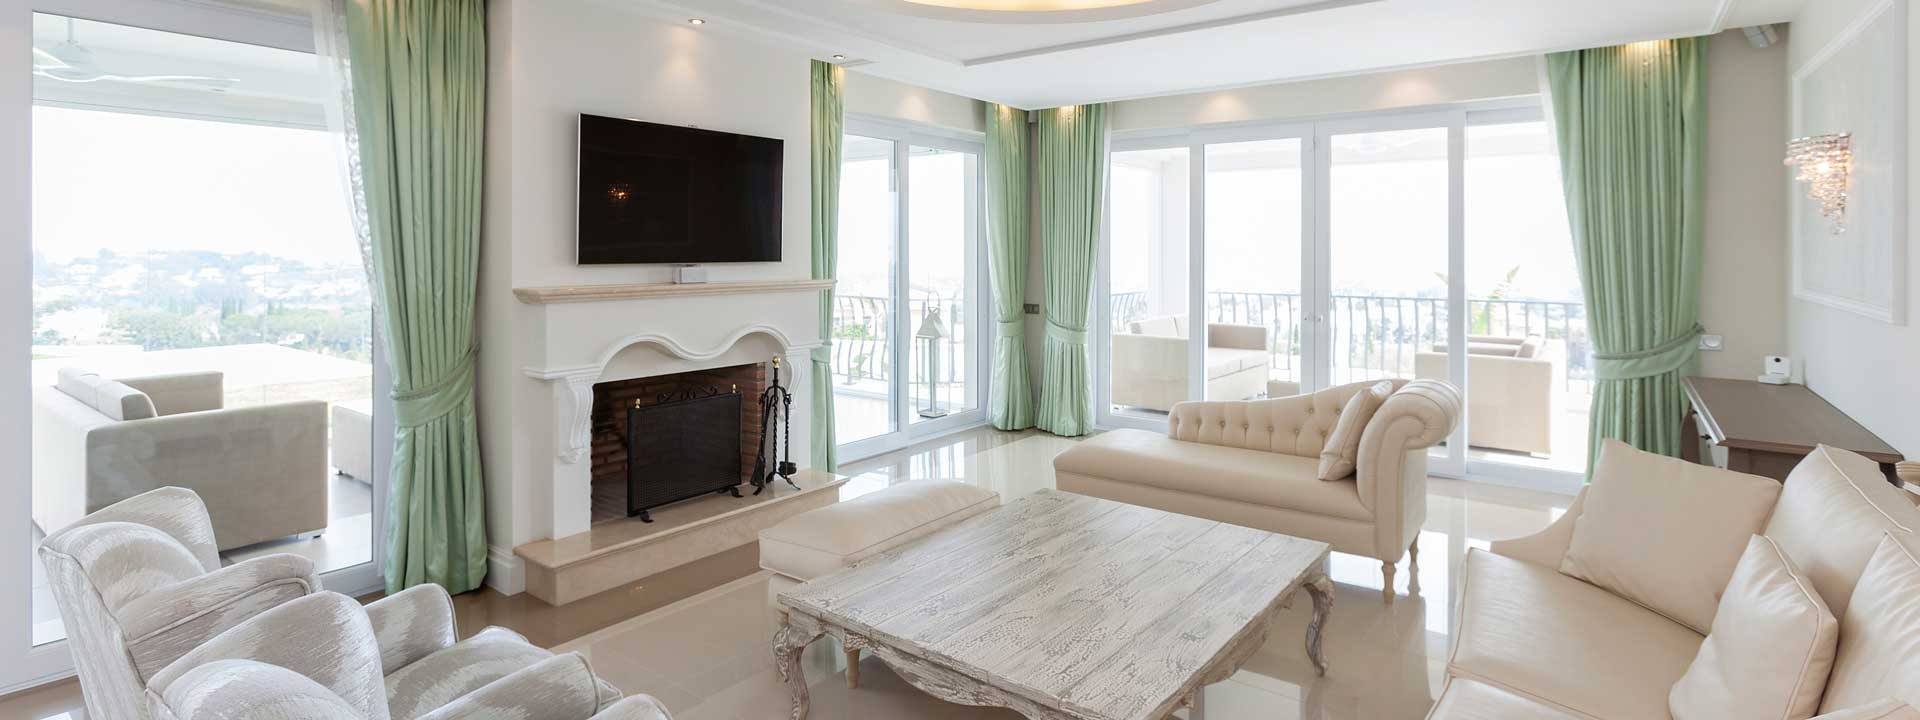 Interior design furniture marbella continental design - Interior design marbella ...